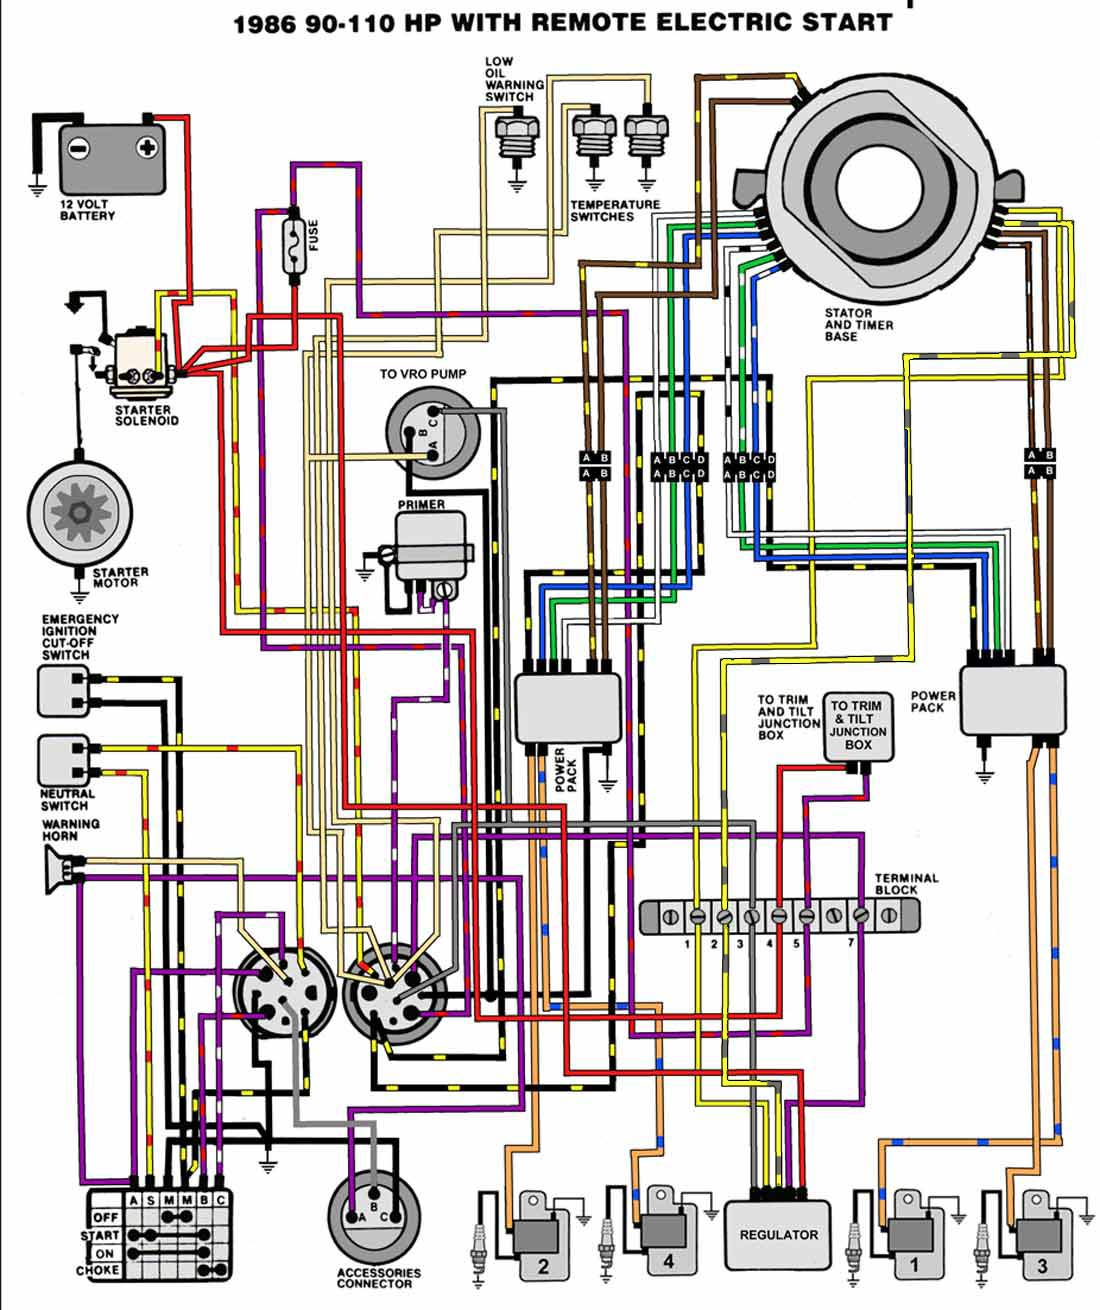 EVINRUDE JOHNSON Outboard Wiring Diagrams -- MASTERTECH ... on omc schematic diagrams, clark wiring diagram, sears wiring diagram, nissan wiring diagram, johnson wiring diagram, polaris wiring diagram, chevrolet wiring diagram, 96 evinrude wiring diagram, john deere wiring diagram, omg wiring diagram, apc wiring diagram, 1972 50 hp evinrude wiring diagram, evinrude key switch wiring diagram, atlas wiring diagram, viking wiring diagram, sea ray wiring diagram, regal wiring diagram, ace wiring diagram, chris craft wiring diagram,